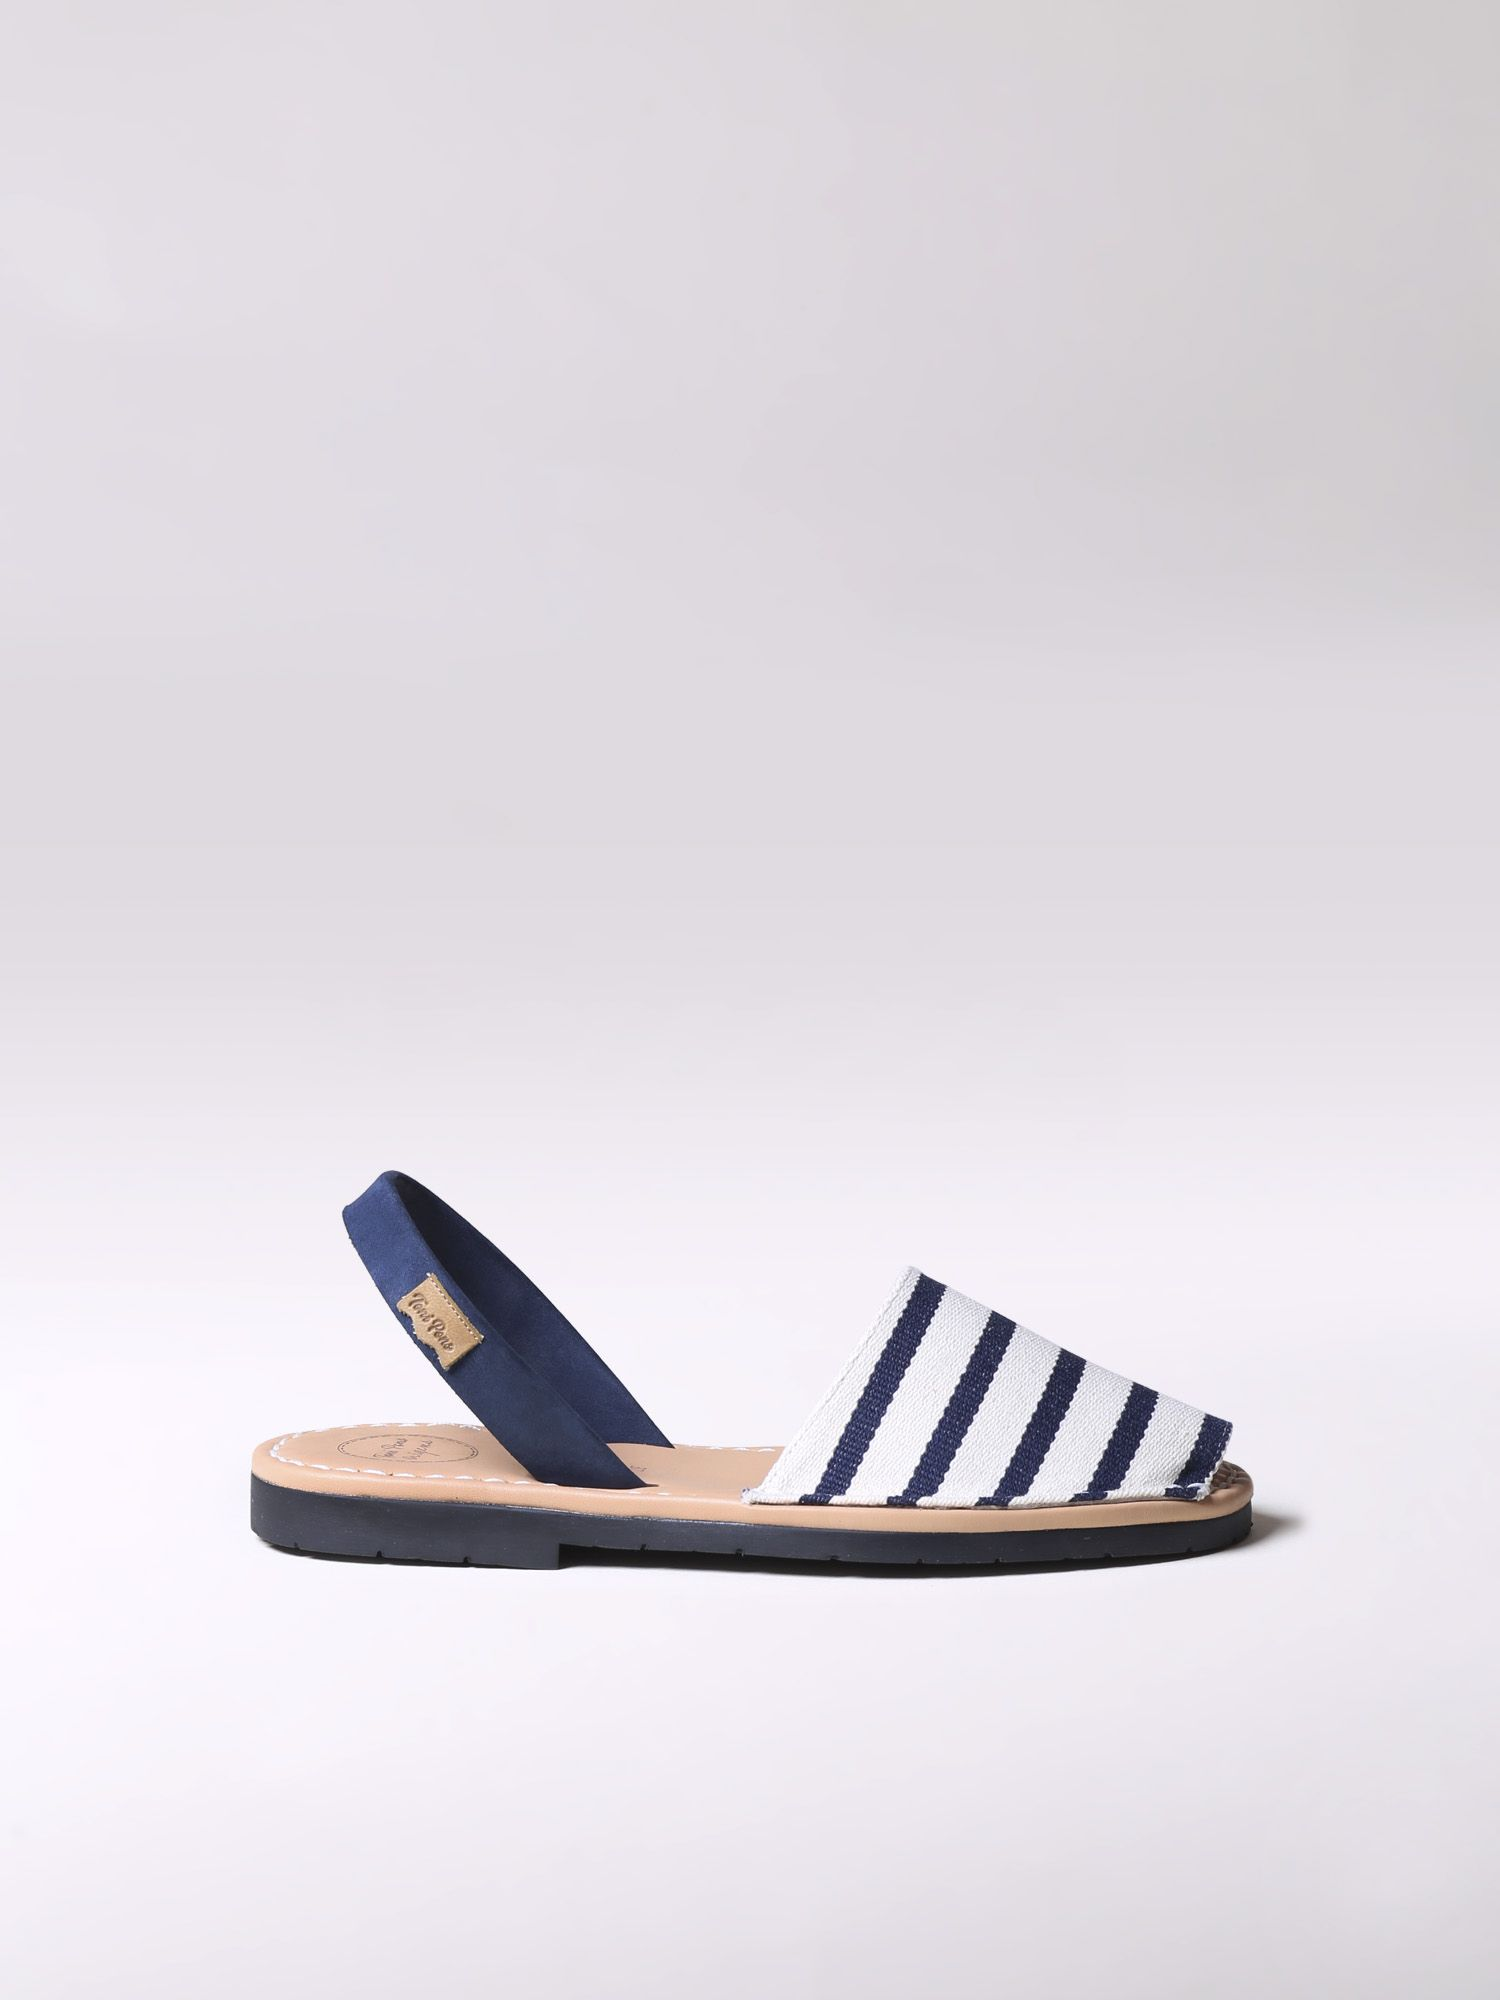 Striped menorquine sandals - MAO-BR